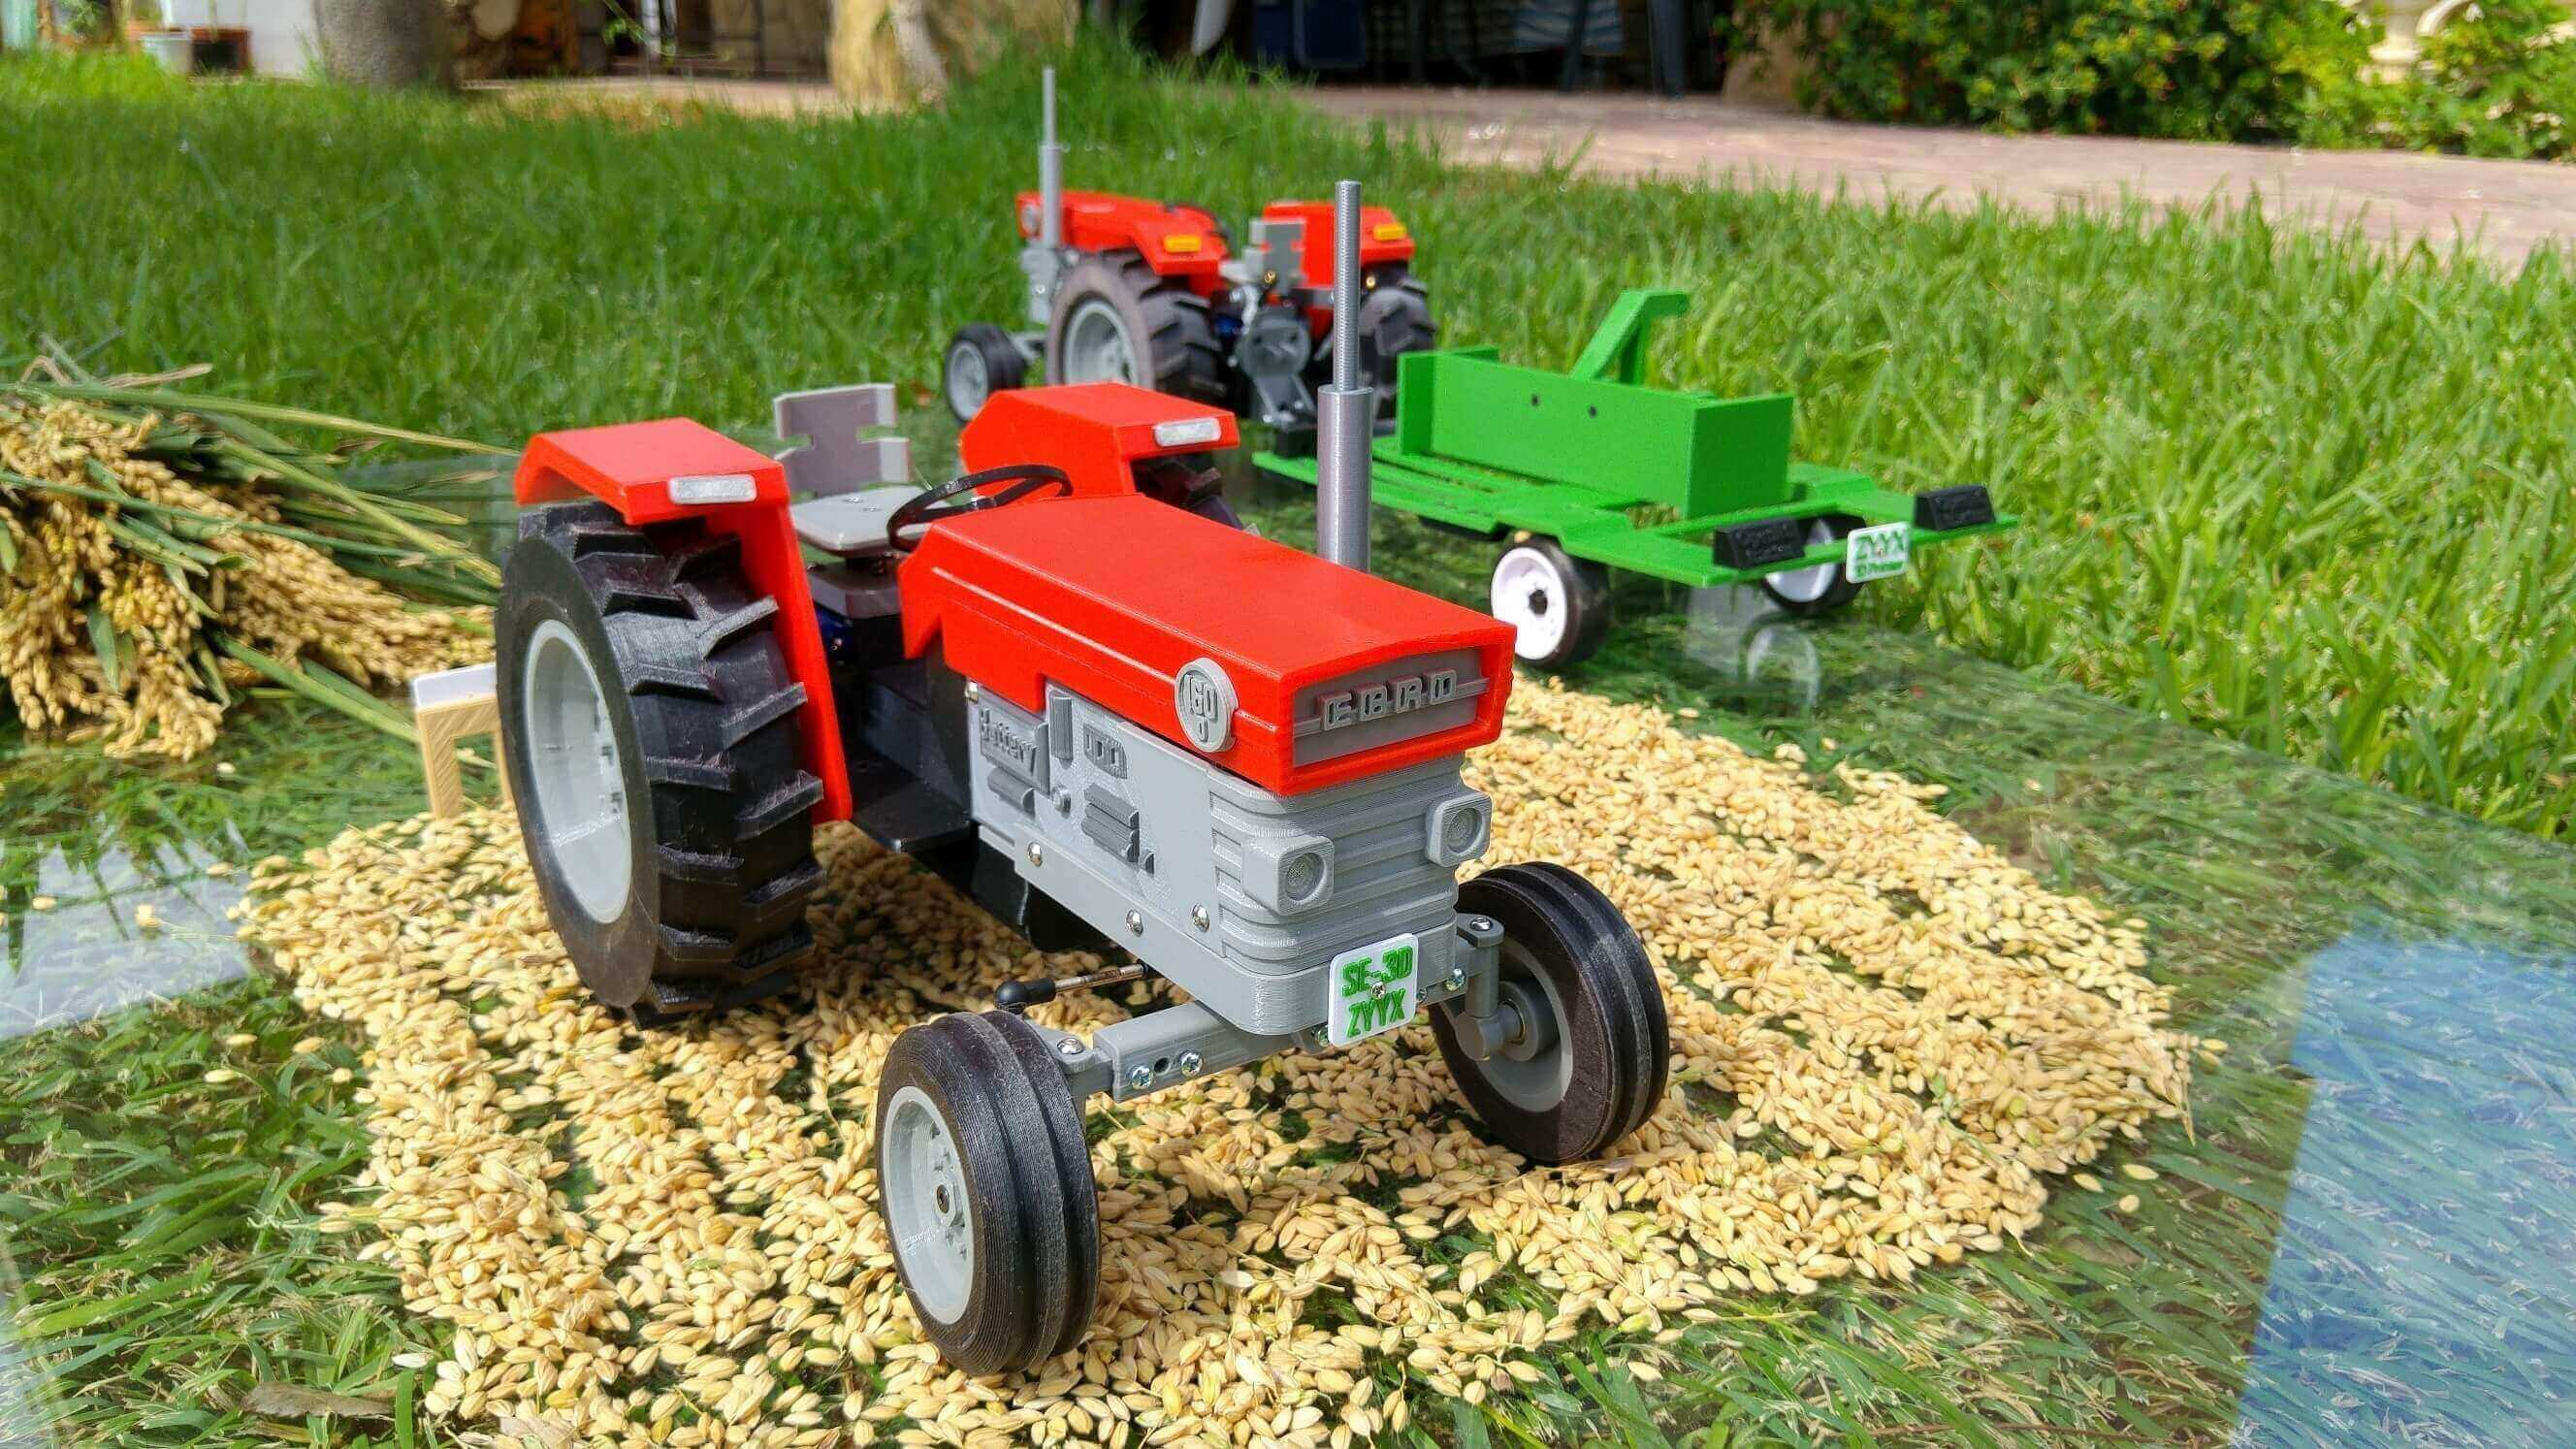 Harvest the Fun with a 3D Printed OpenRC Tractor | All3DP